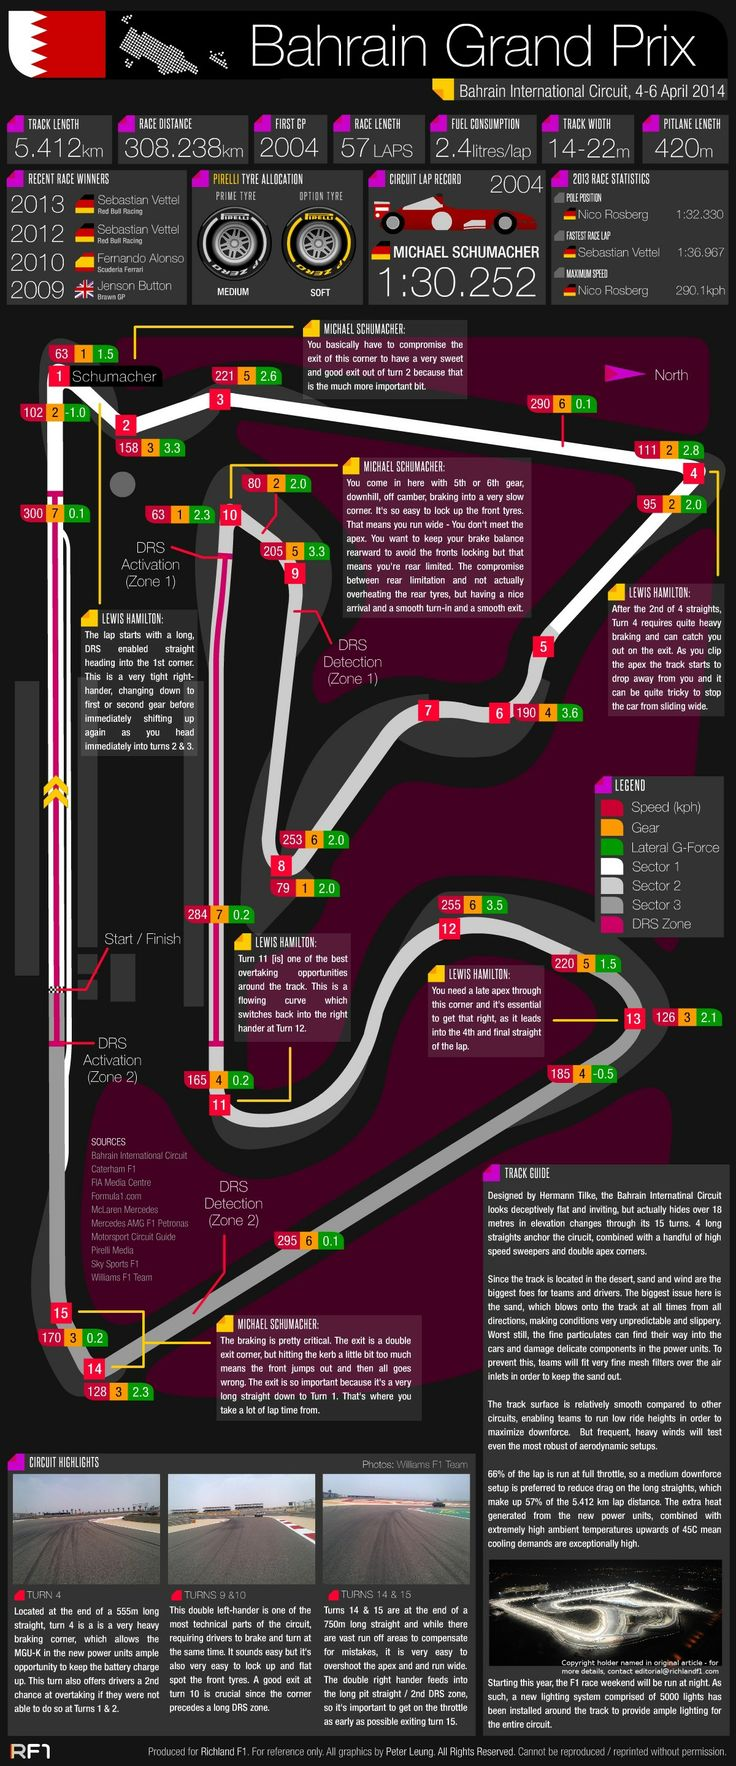 Grand Prix Guide - 2014 Bahrain Grand Prix #Infographic #F1